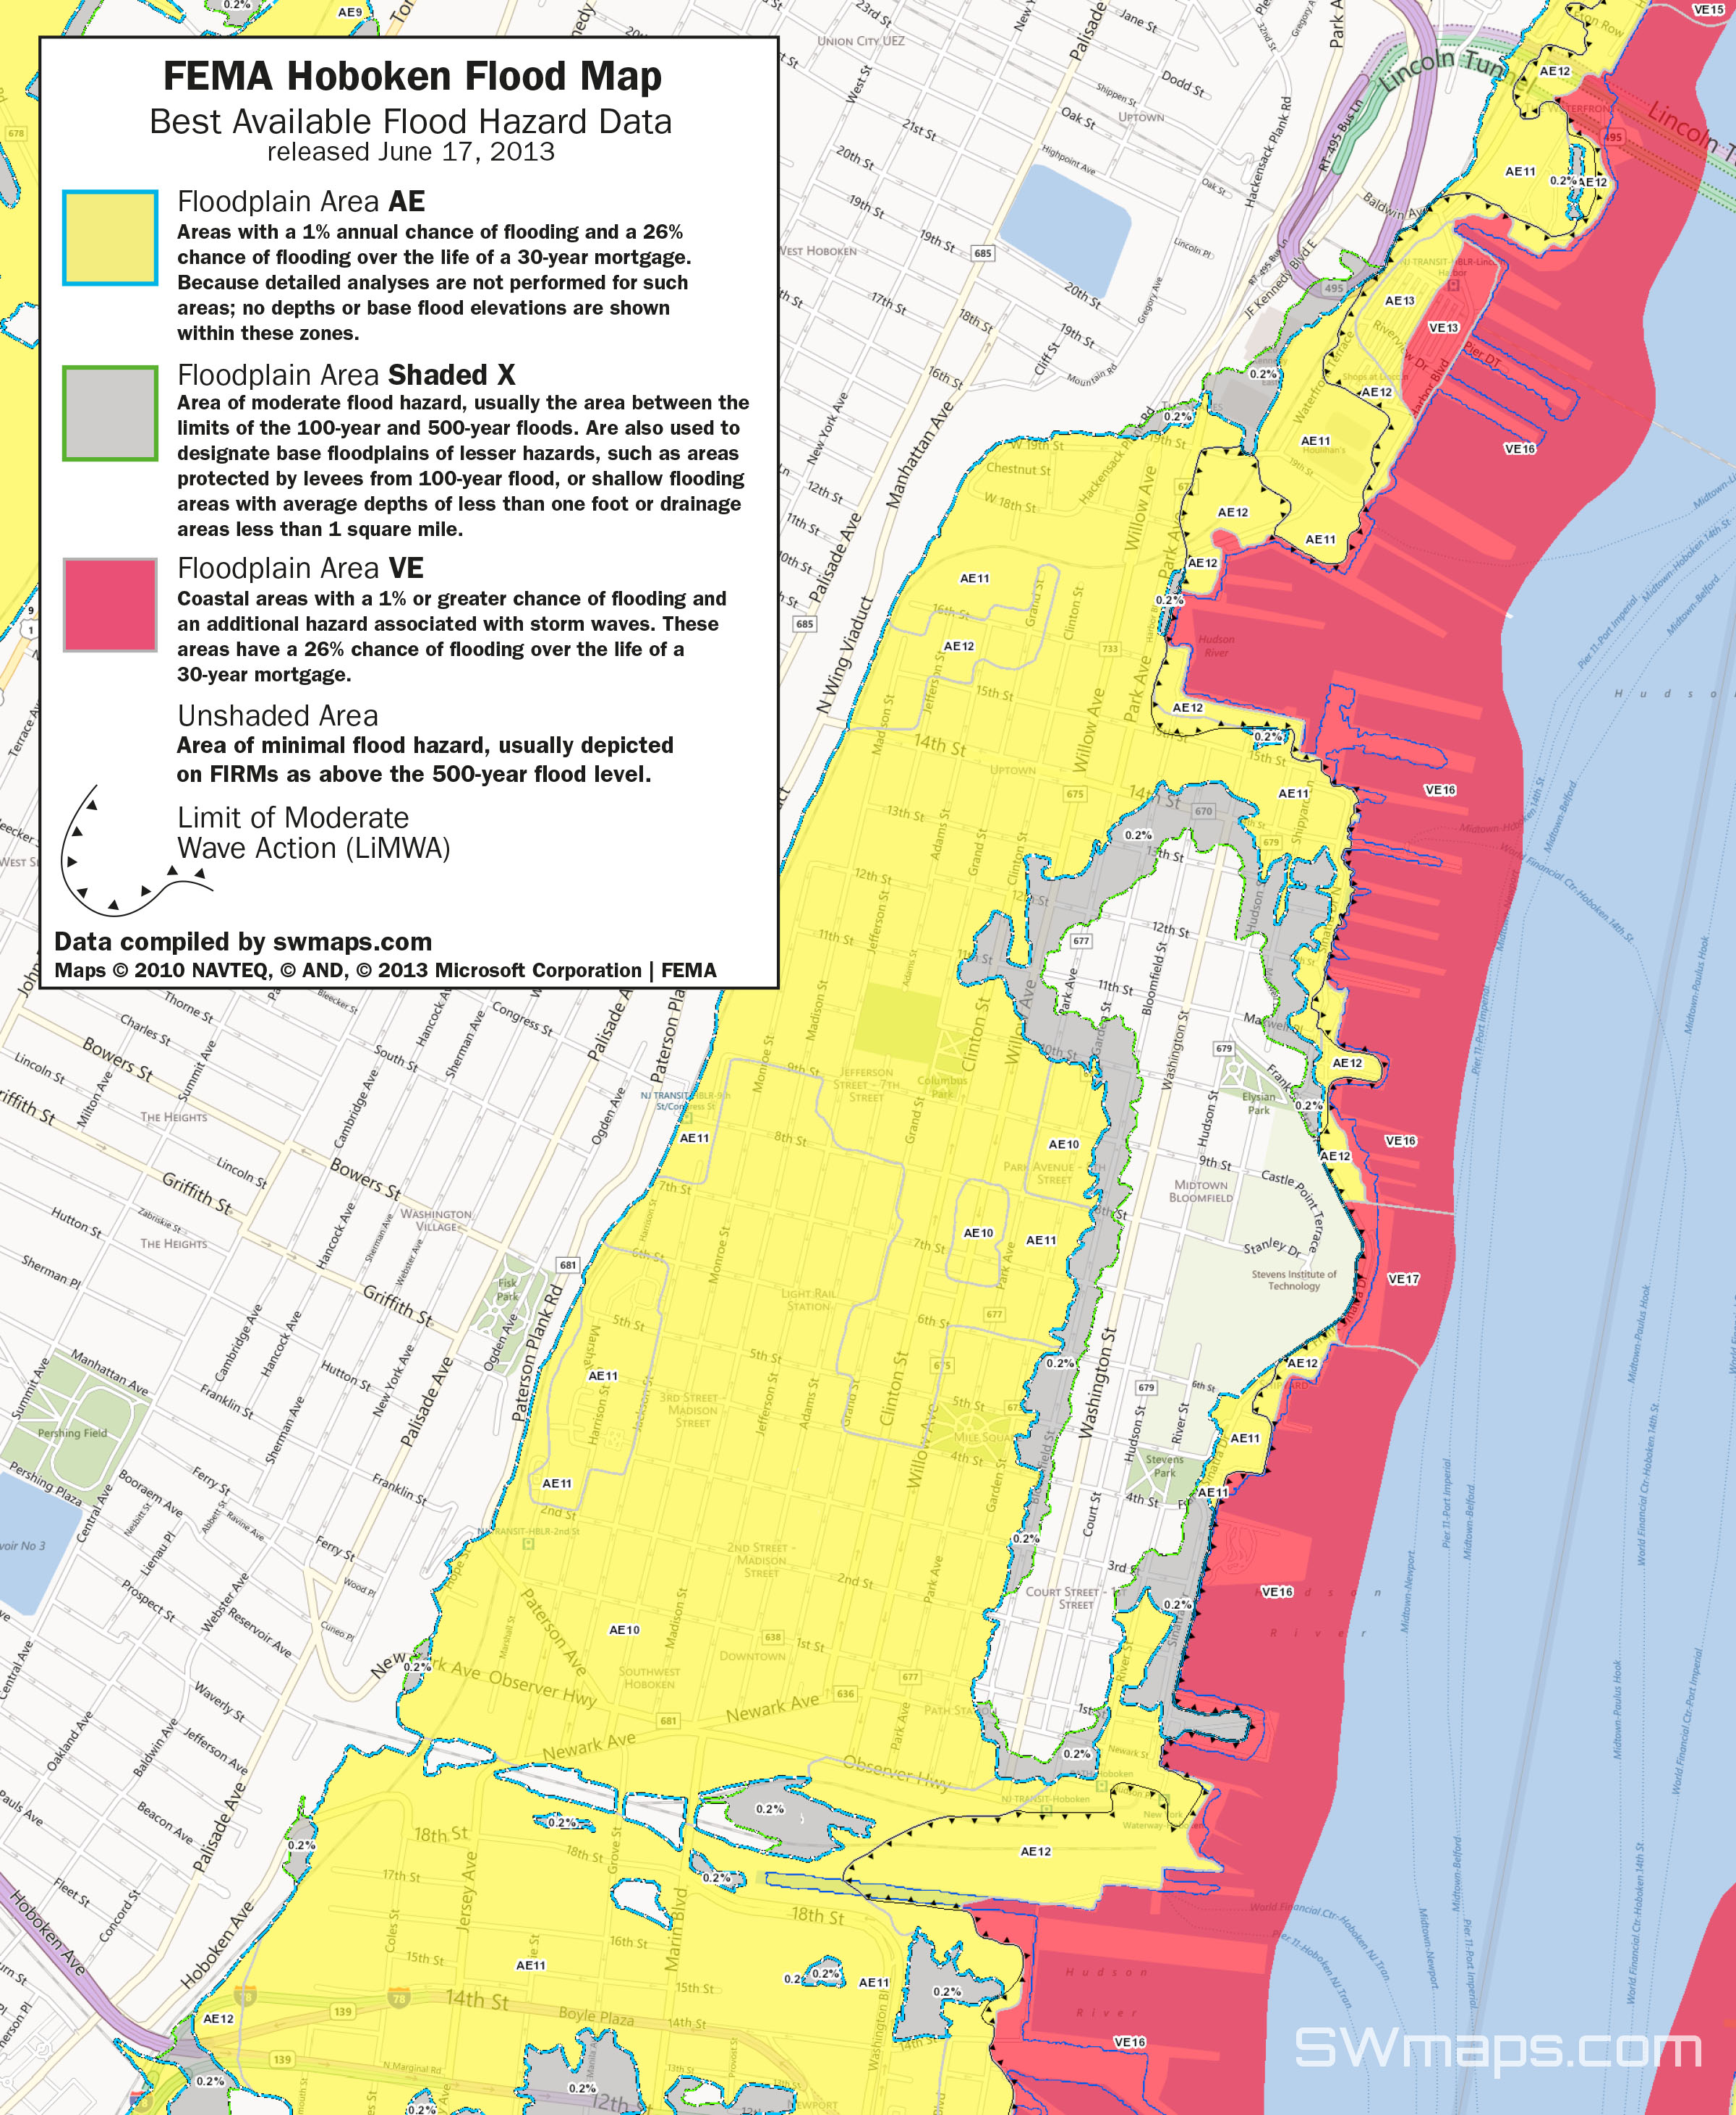 New Hoboken Flood Map: FEMA Best Available Flood Hazard Data ... on fema 100 year flood maps, fema flood maps tennessee, fema issued flood maps, fema flood maps new jersey, fema flood maps find, fema flood maps nebraska, hawaii county tax maps, fema inundation maps, old wilson county kansas maps, simple drawings of city maps, historic south jersey tax maps, fema hazard maps,